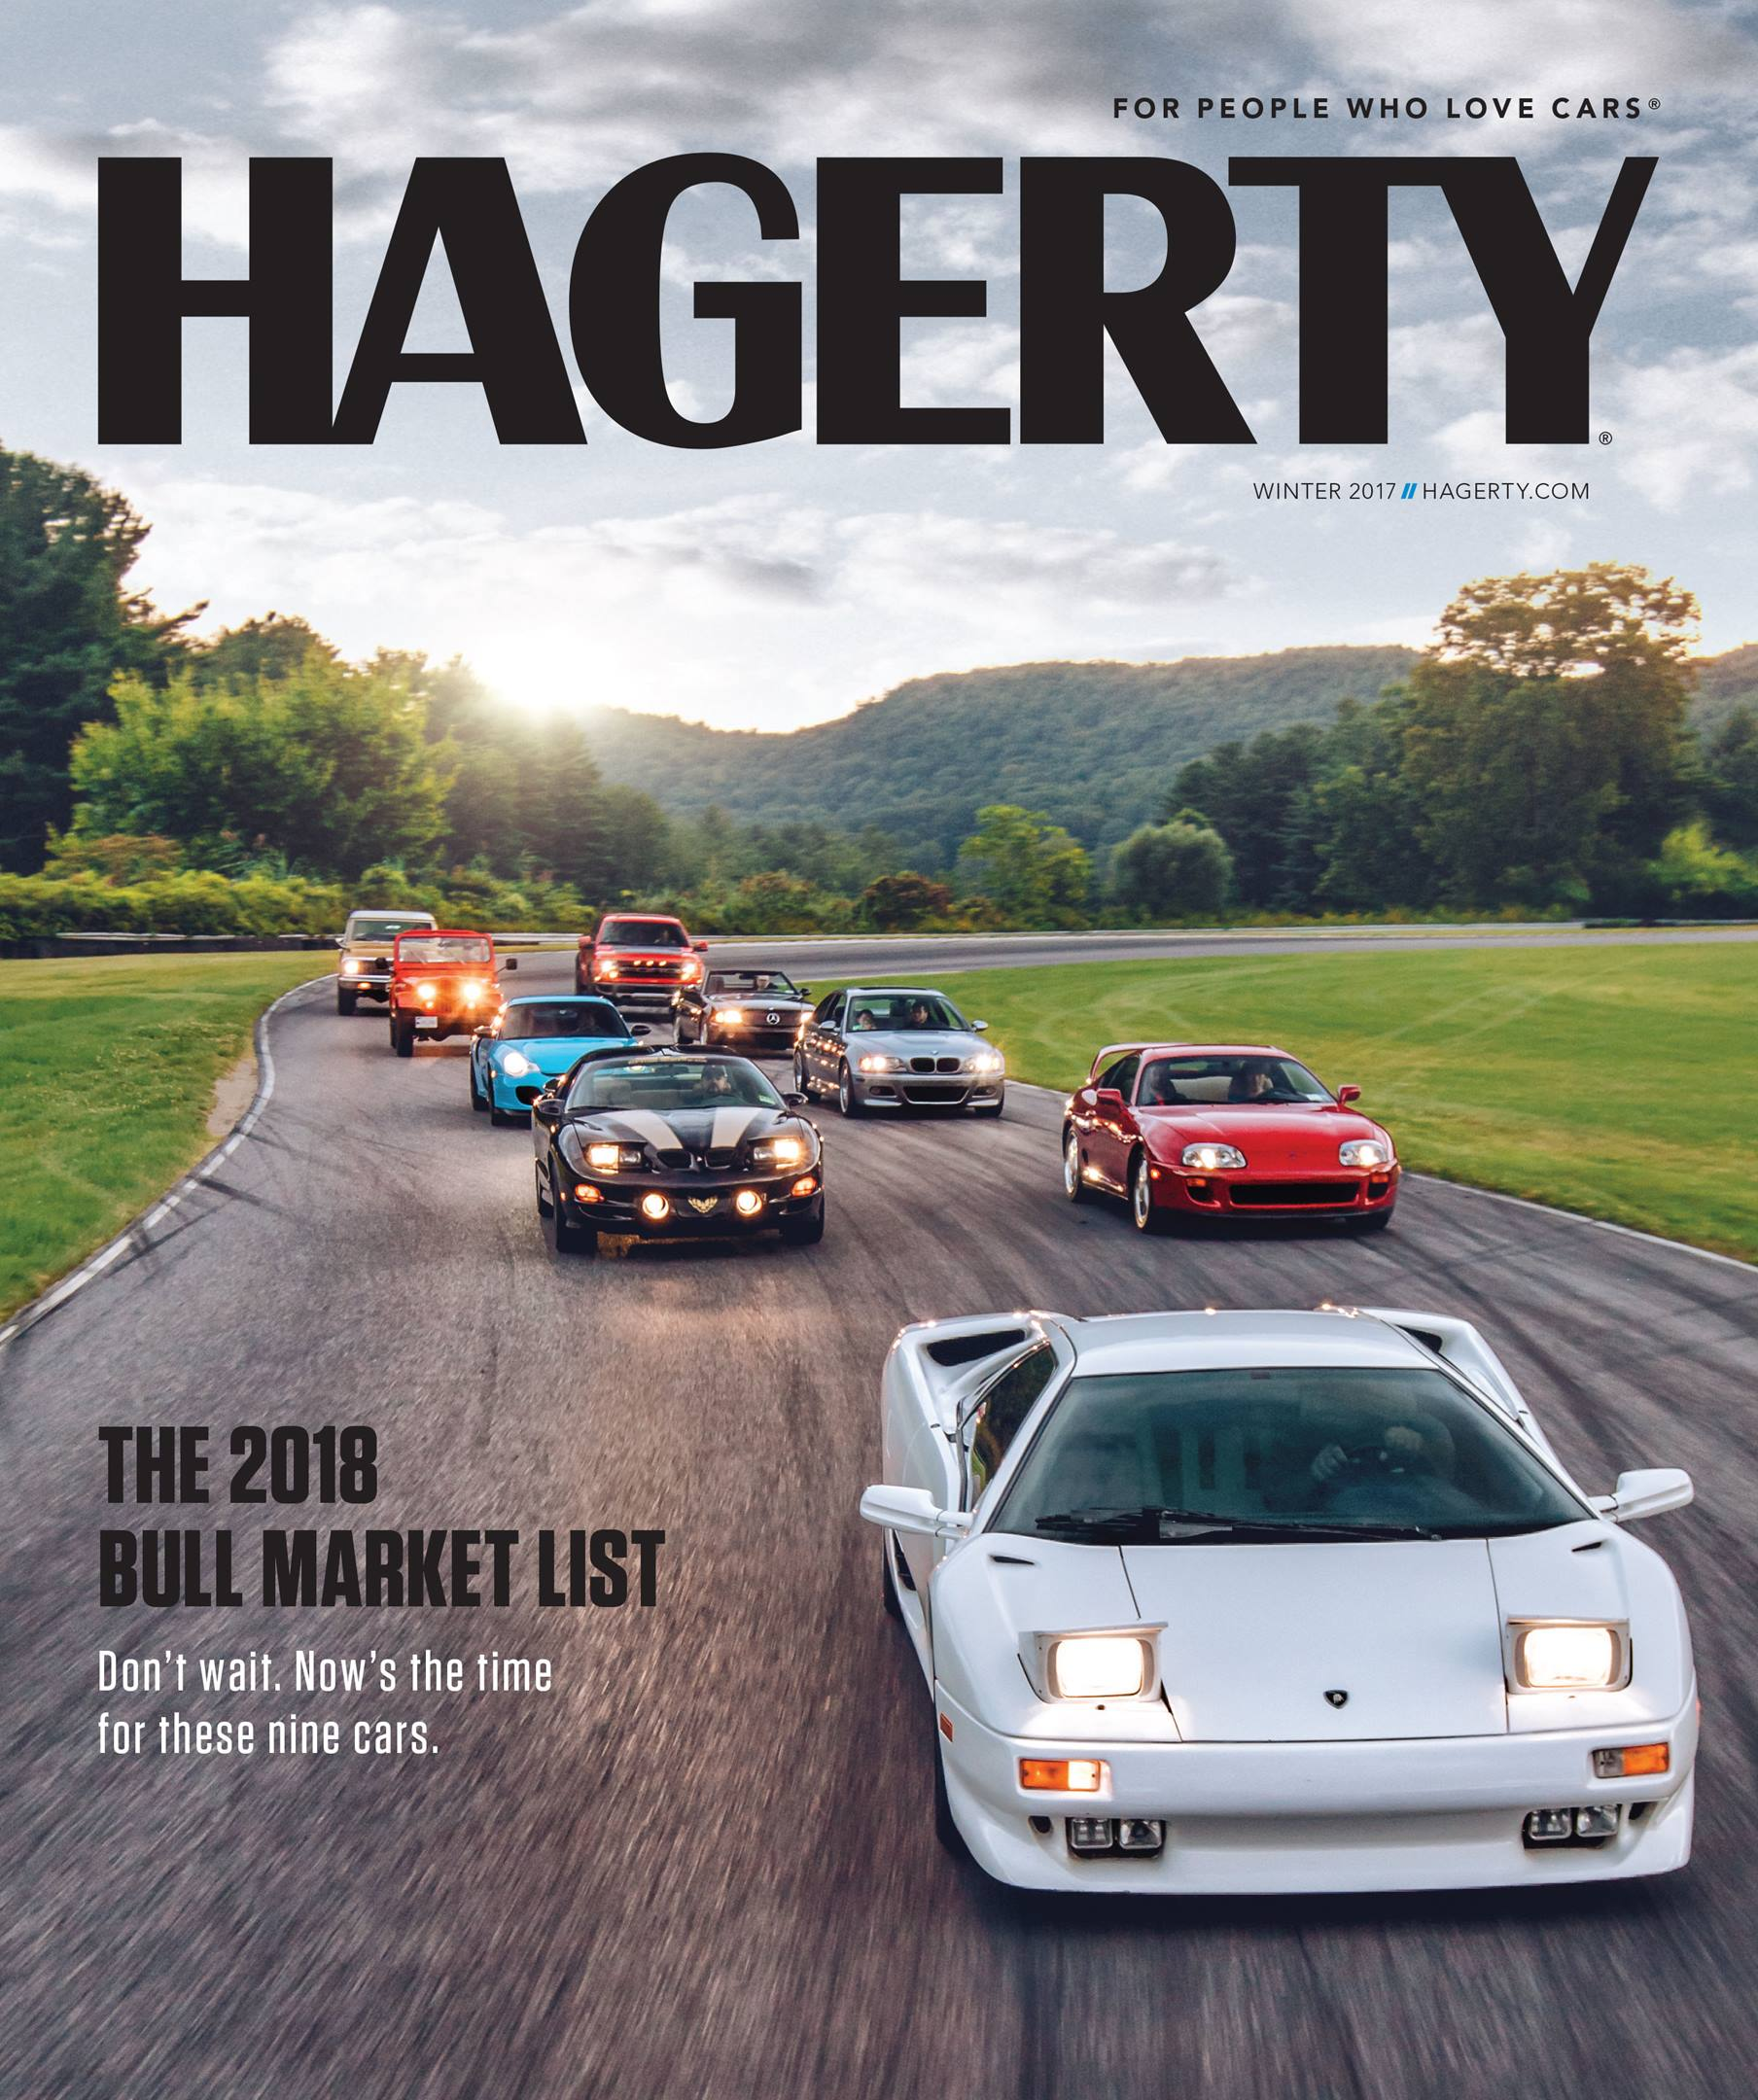 Hagerty magazine cover